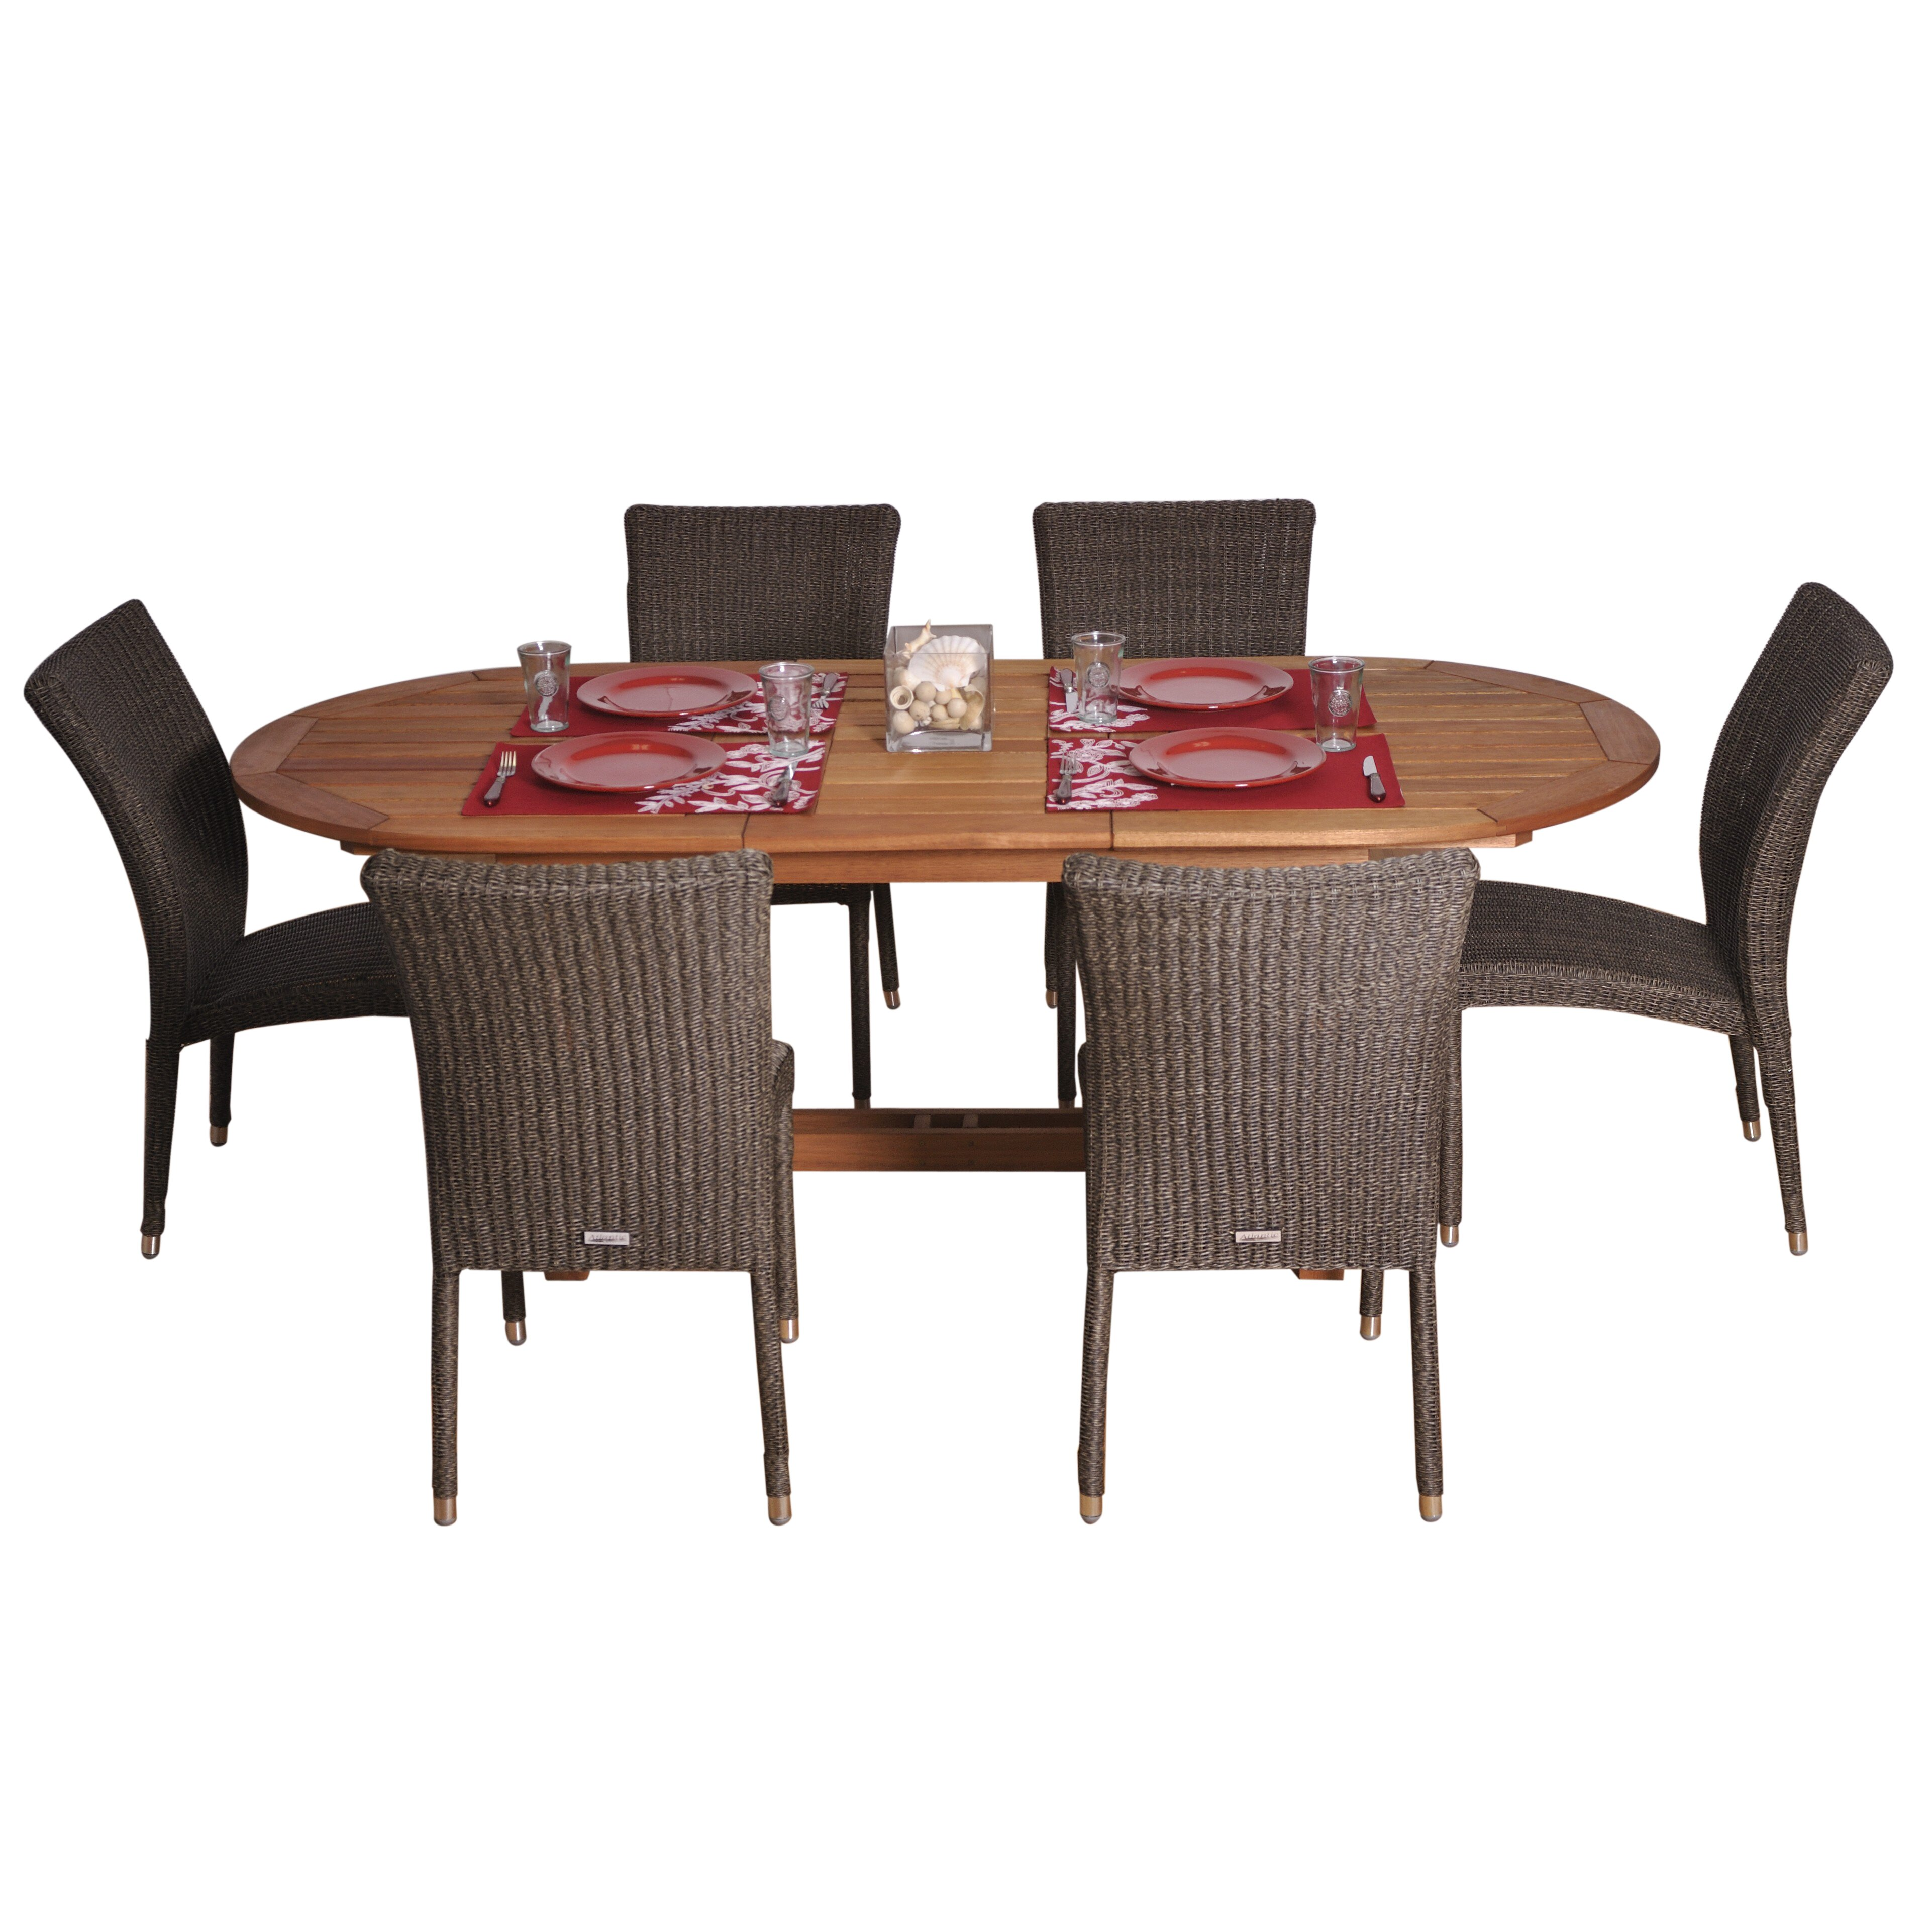 Beachcrest home elsmere 7 piece dining set reviews wayfair for 7 piece dining set